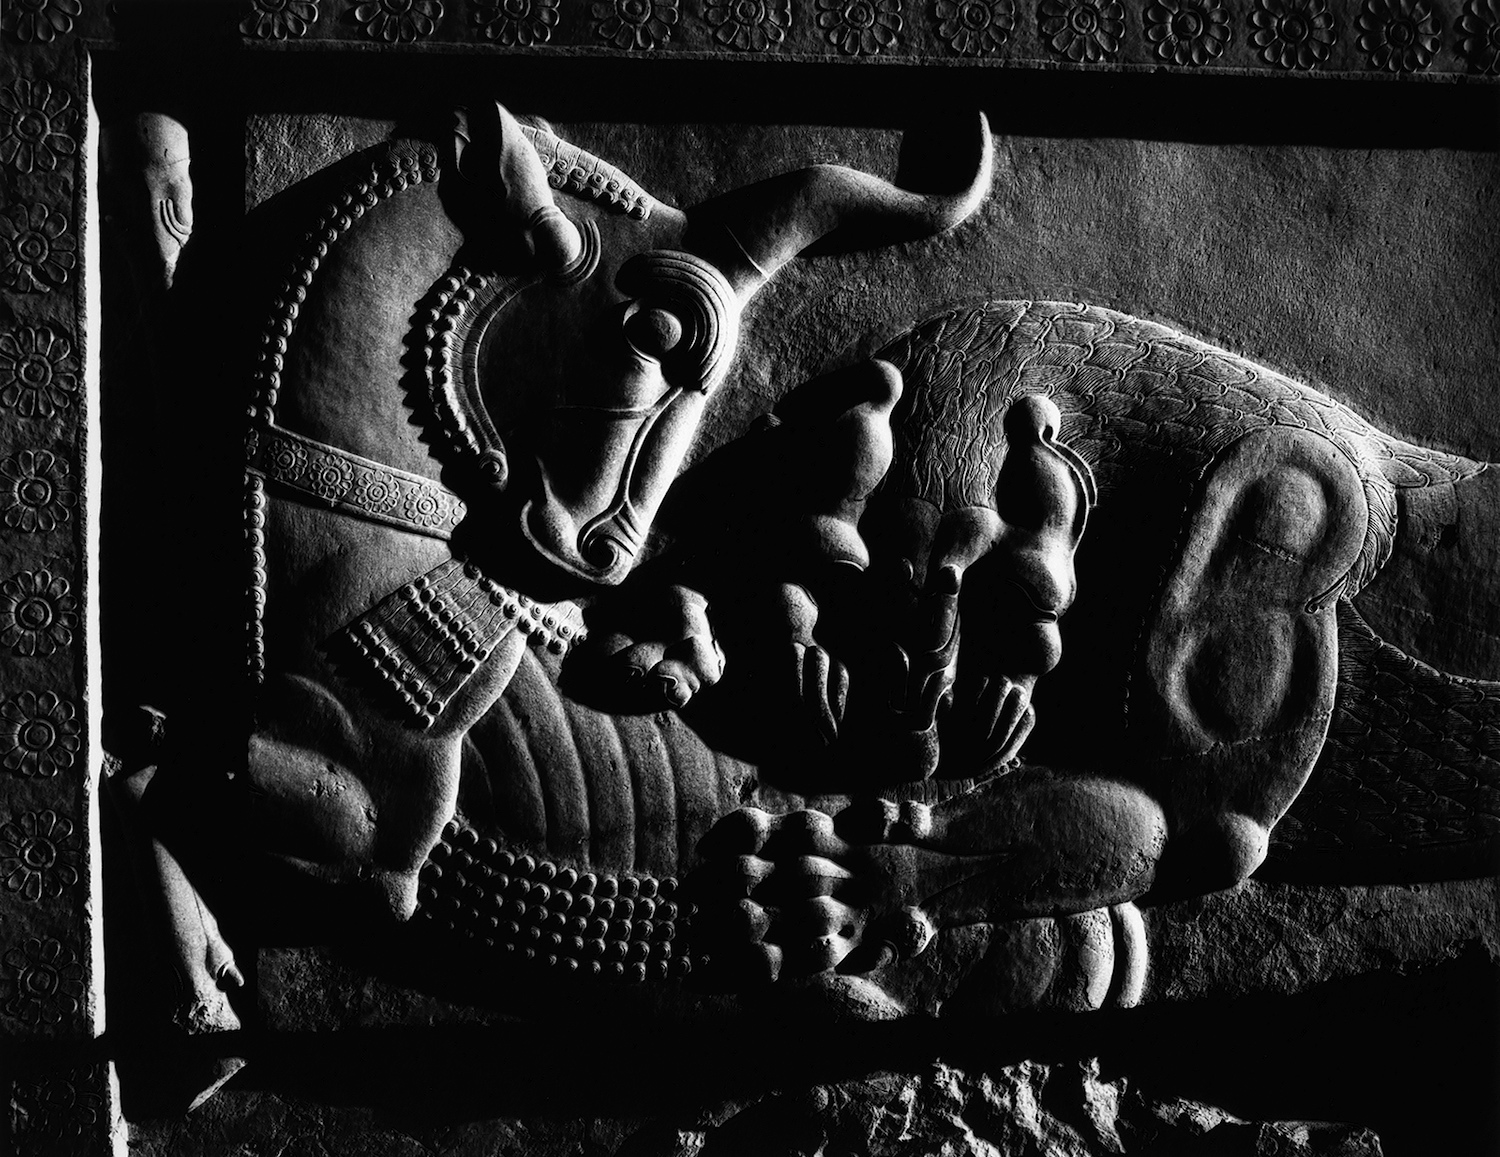 Lion and Bull, Persepolis